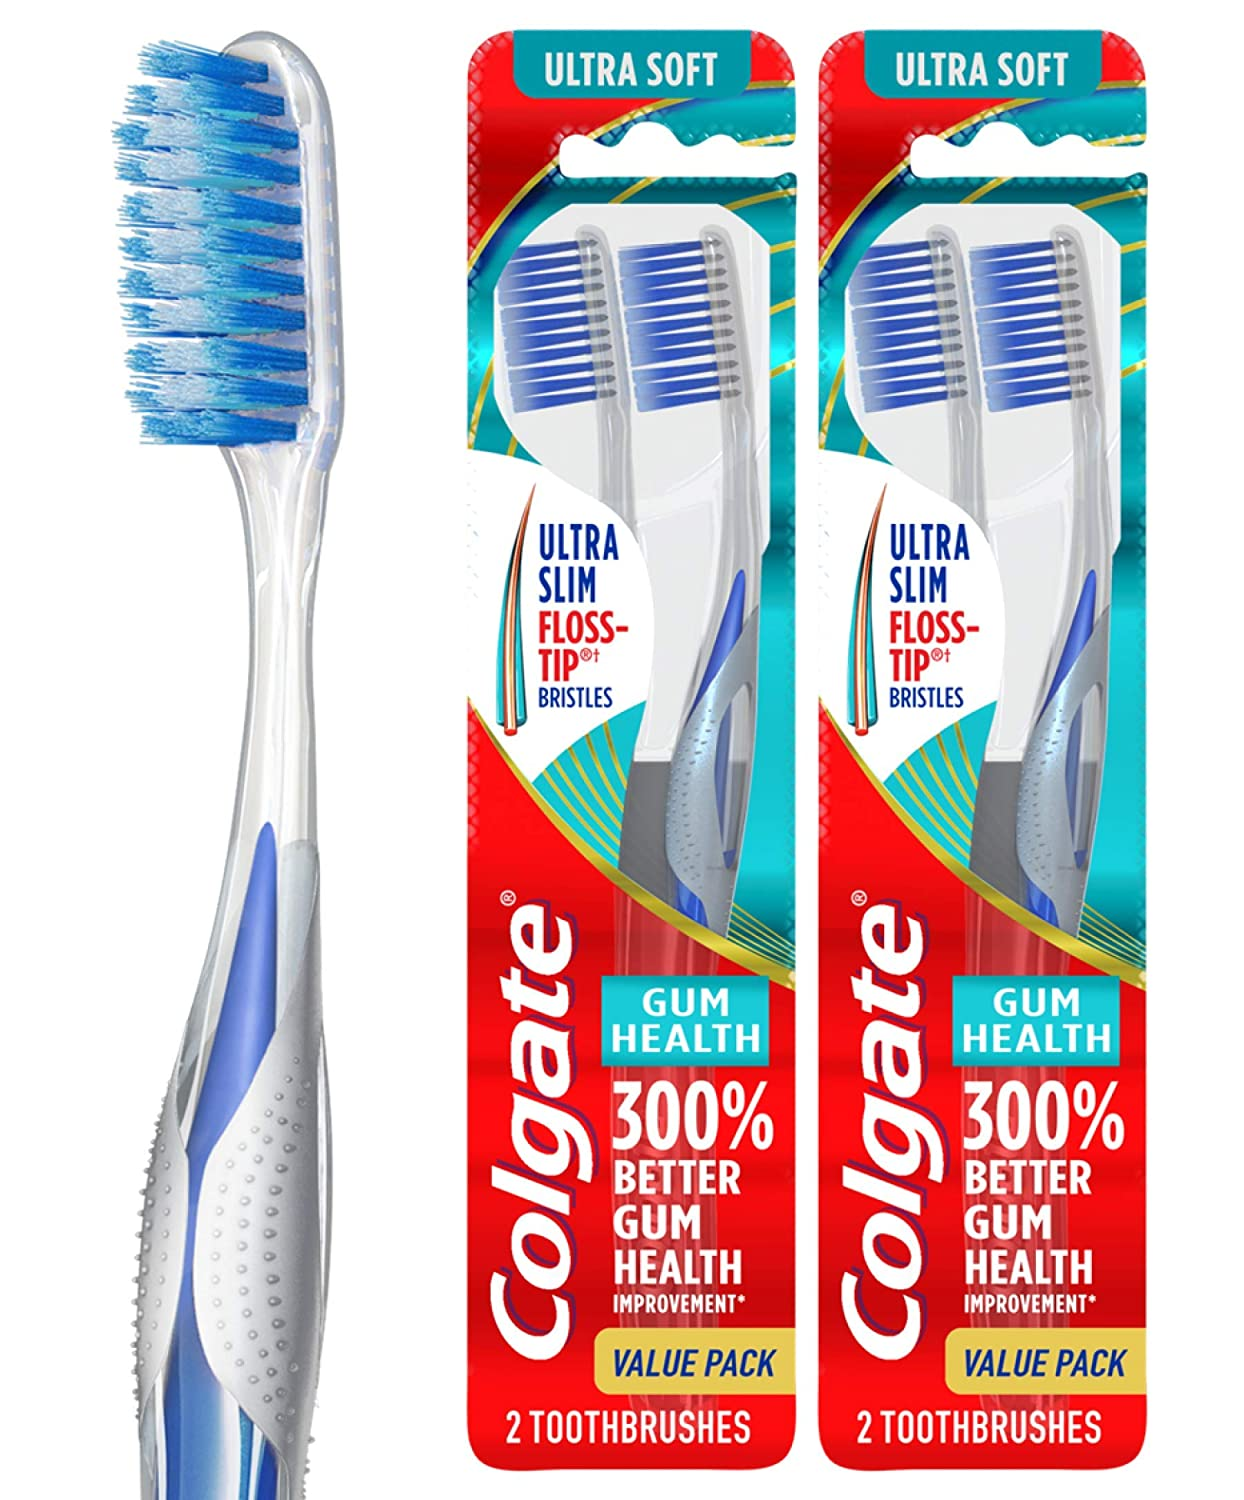 Colgate Gum Health Extra Soft Toothbrushes with Floss-Tip Bristles - 4 Count: Beauty